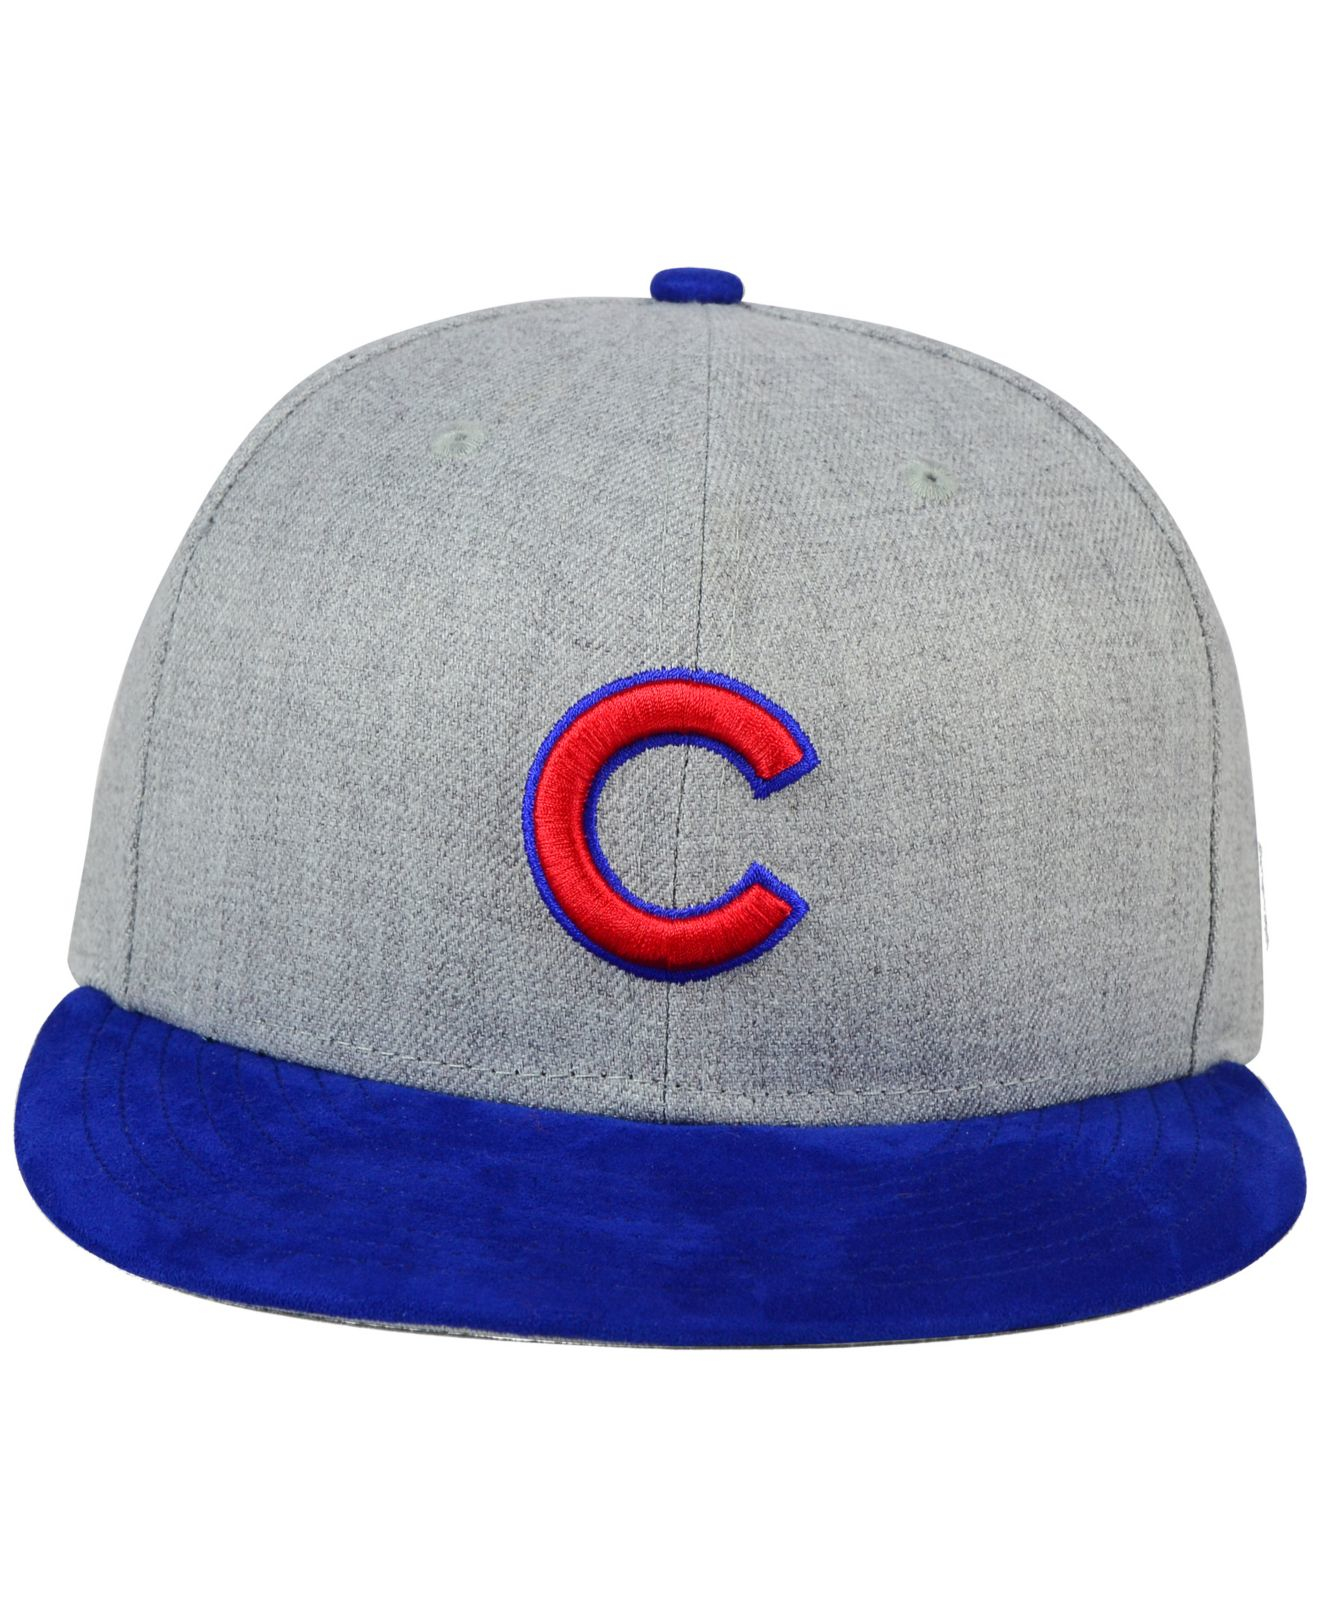 Lyst - KTZ Chicago Cubs Heather On Faux-suede 9fifty Snapback Cap in ... c370d697937f